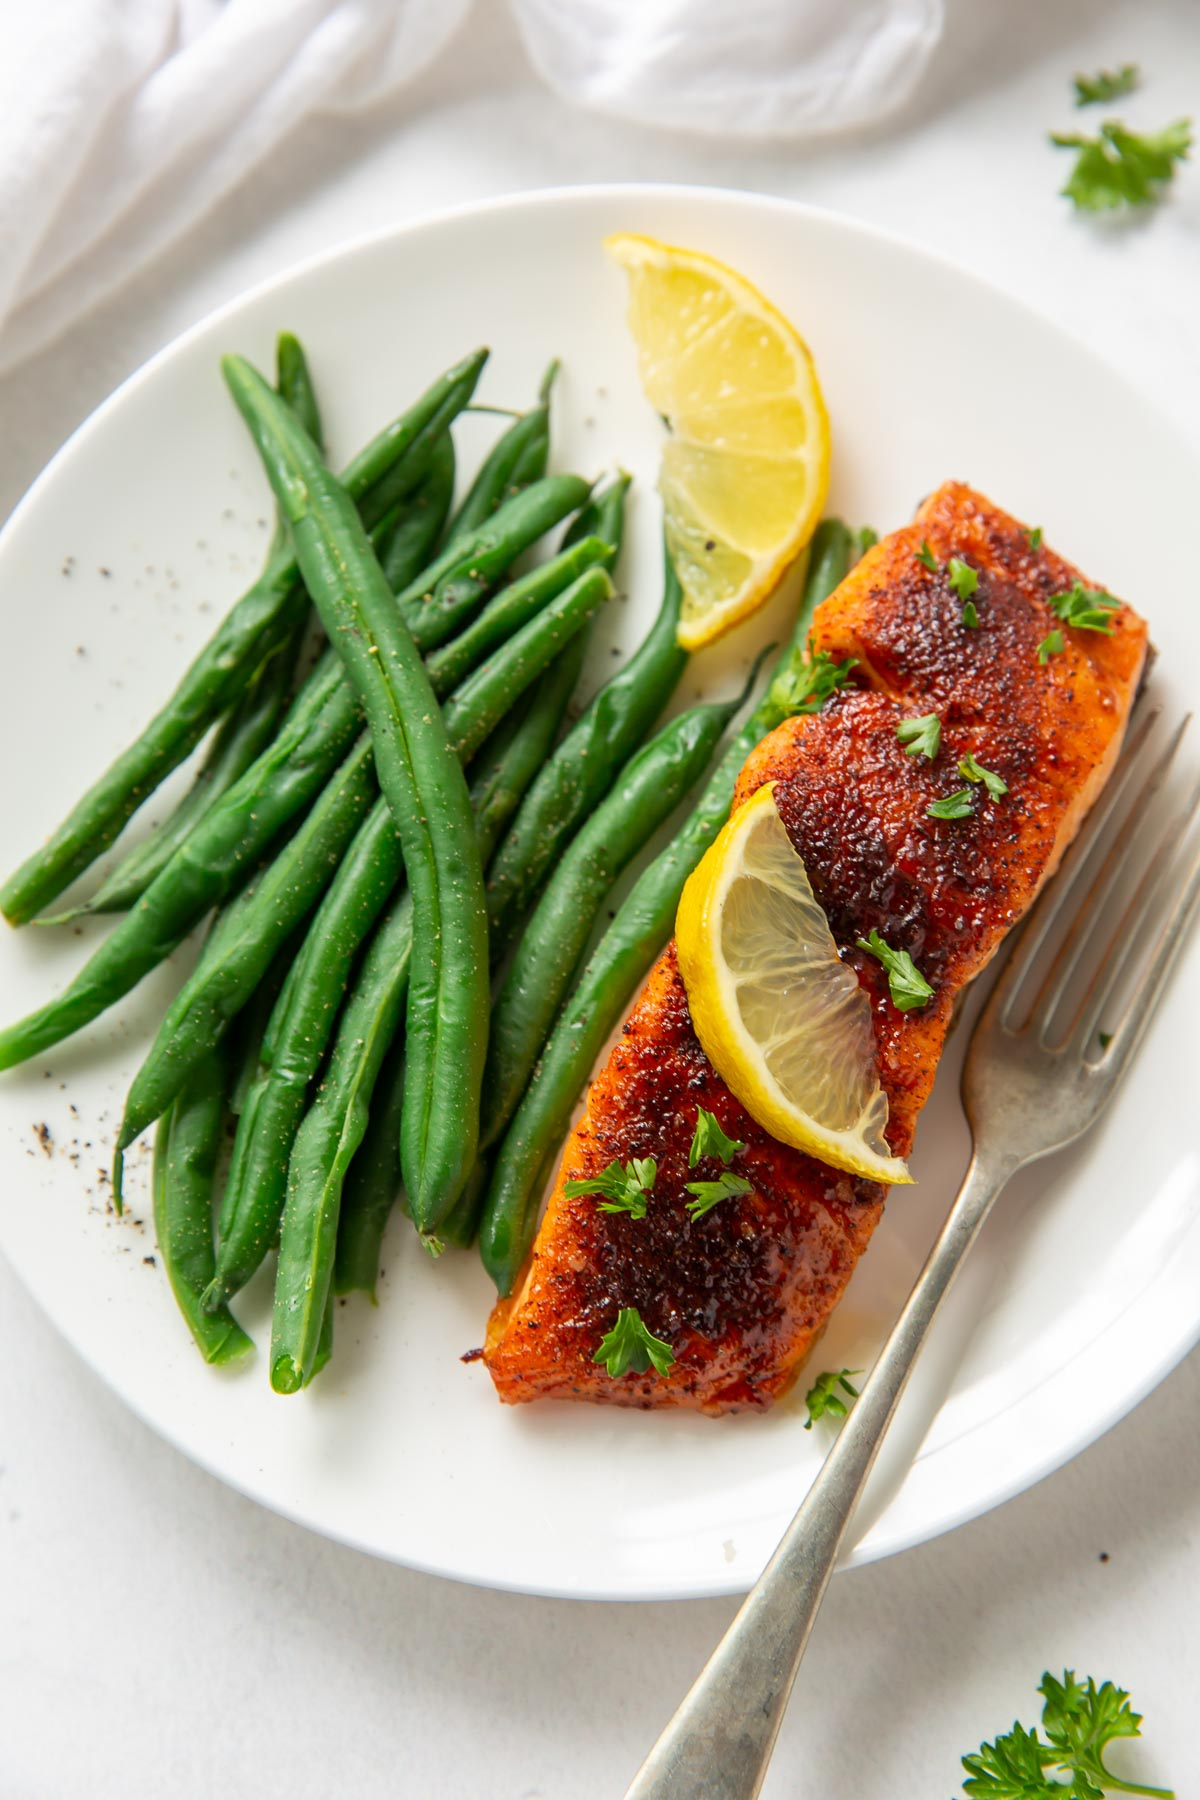 air fryer salmon fillet served with green beans and lemon slices